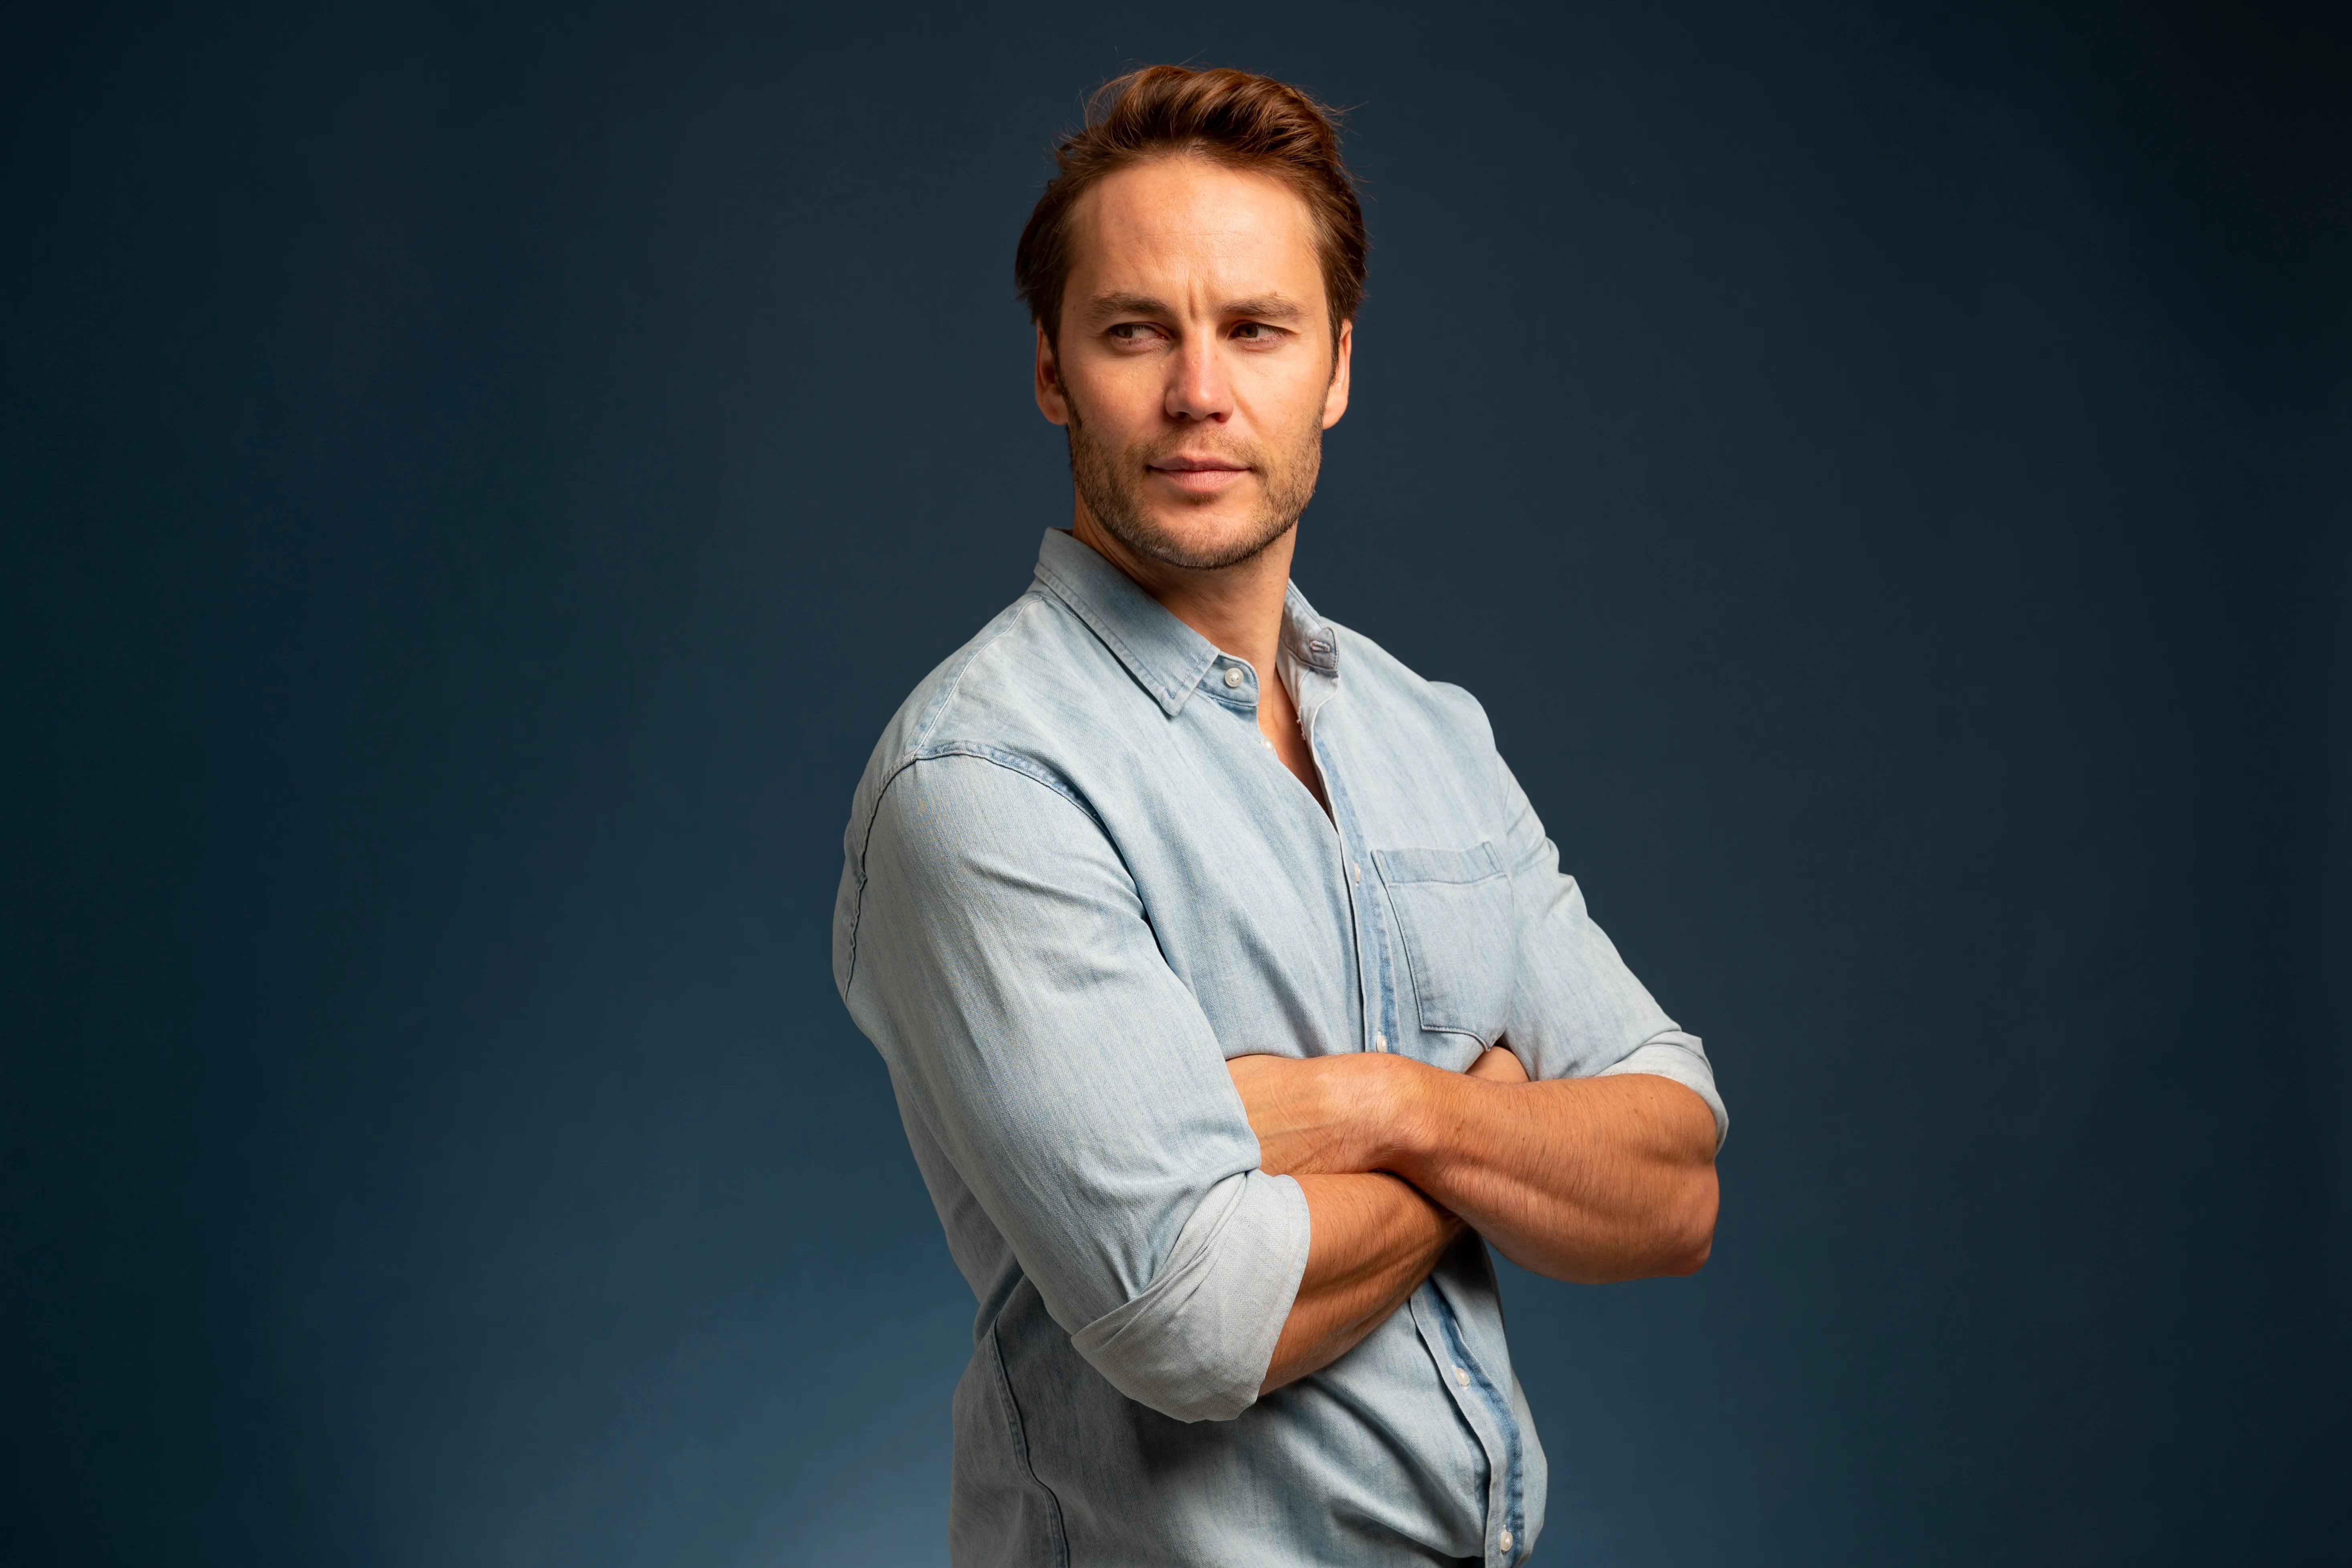 Taylor Kitsch plays a bad guy with nuance and special skills | The Seattle Times